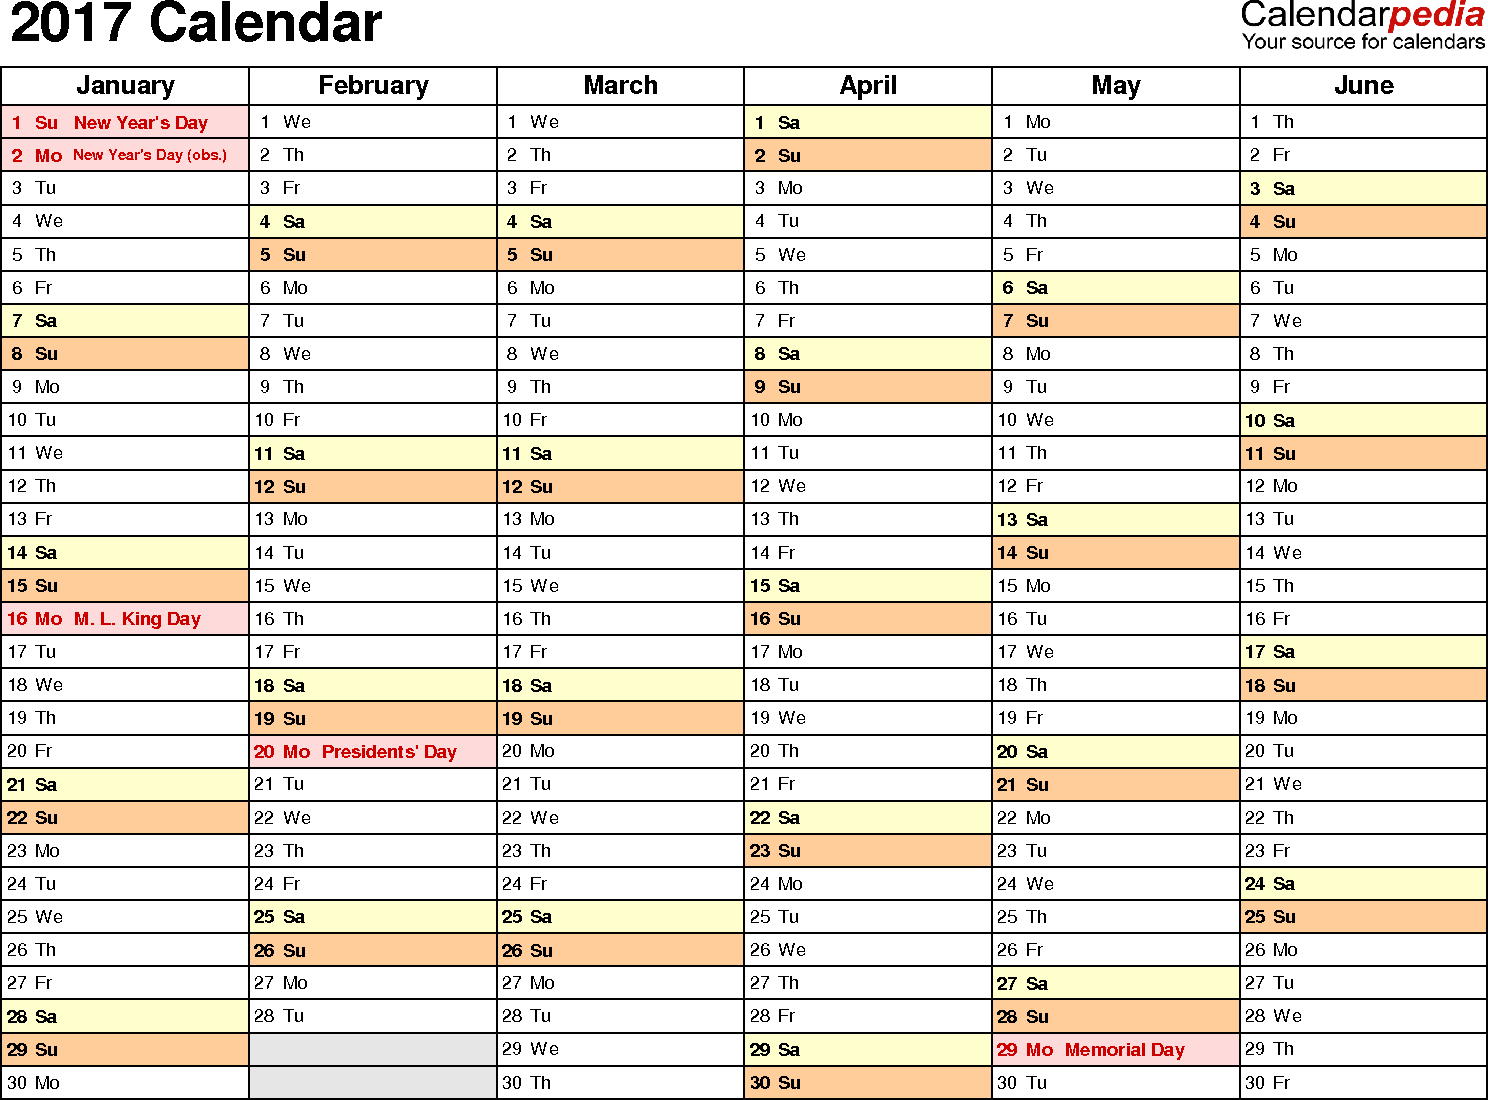 Ediblewildsus  Personable  Calendar  Download  Free Printable Excel Templates Xls With Entrancing Template   Calendar For Excel Months Horizontally  Pages Landscape Orientation With Charming Protect Structure And Windows Excel Also Rank Excel  In Addition Comparing Excel Files And Pdf Into Excel Converter Online As Well As Useful Excel Shortcuts Additionally Percentage Formula Column Excel From Calendarpediacom With Ediblewildsus  Entrancing  Calendar  Download  Free Printable Excel Templates Xls With Charming Template   Calendar For Excel Months Horizontally  Pages Landscape Orientation And Personable Protect Structure And Windows Excel Also Rank Excel  In Addition Comparing Excel Files From Calendarpediacom